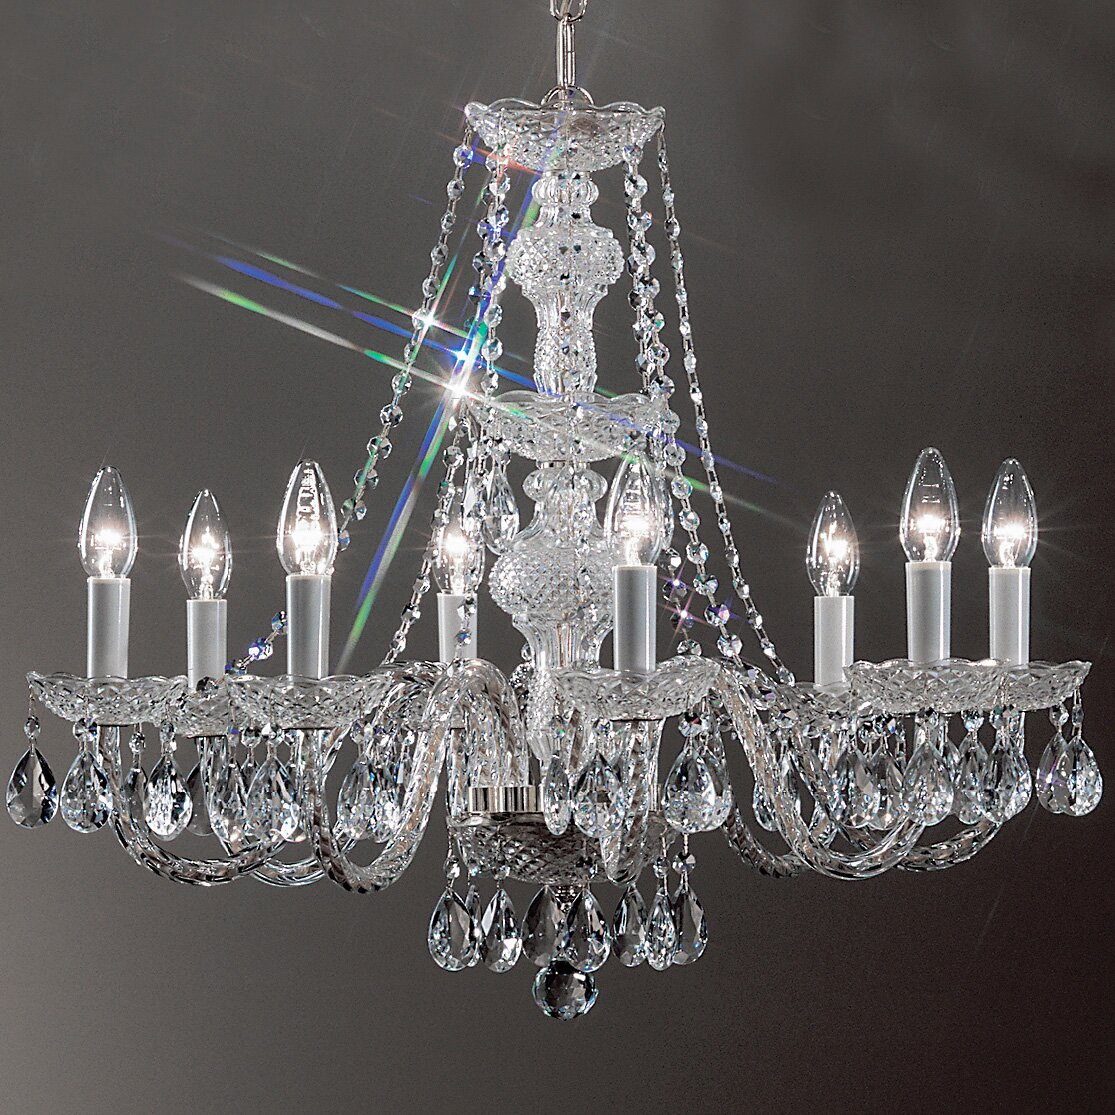 Classic Lighting Monticello 8 Light Chandelier amp Reviews  : Classic Lighting Monticello 8 Light Chandelier from www.wayfair.com size 1115 x 1115 jpeg 545kB